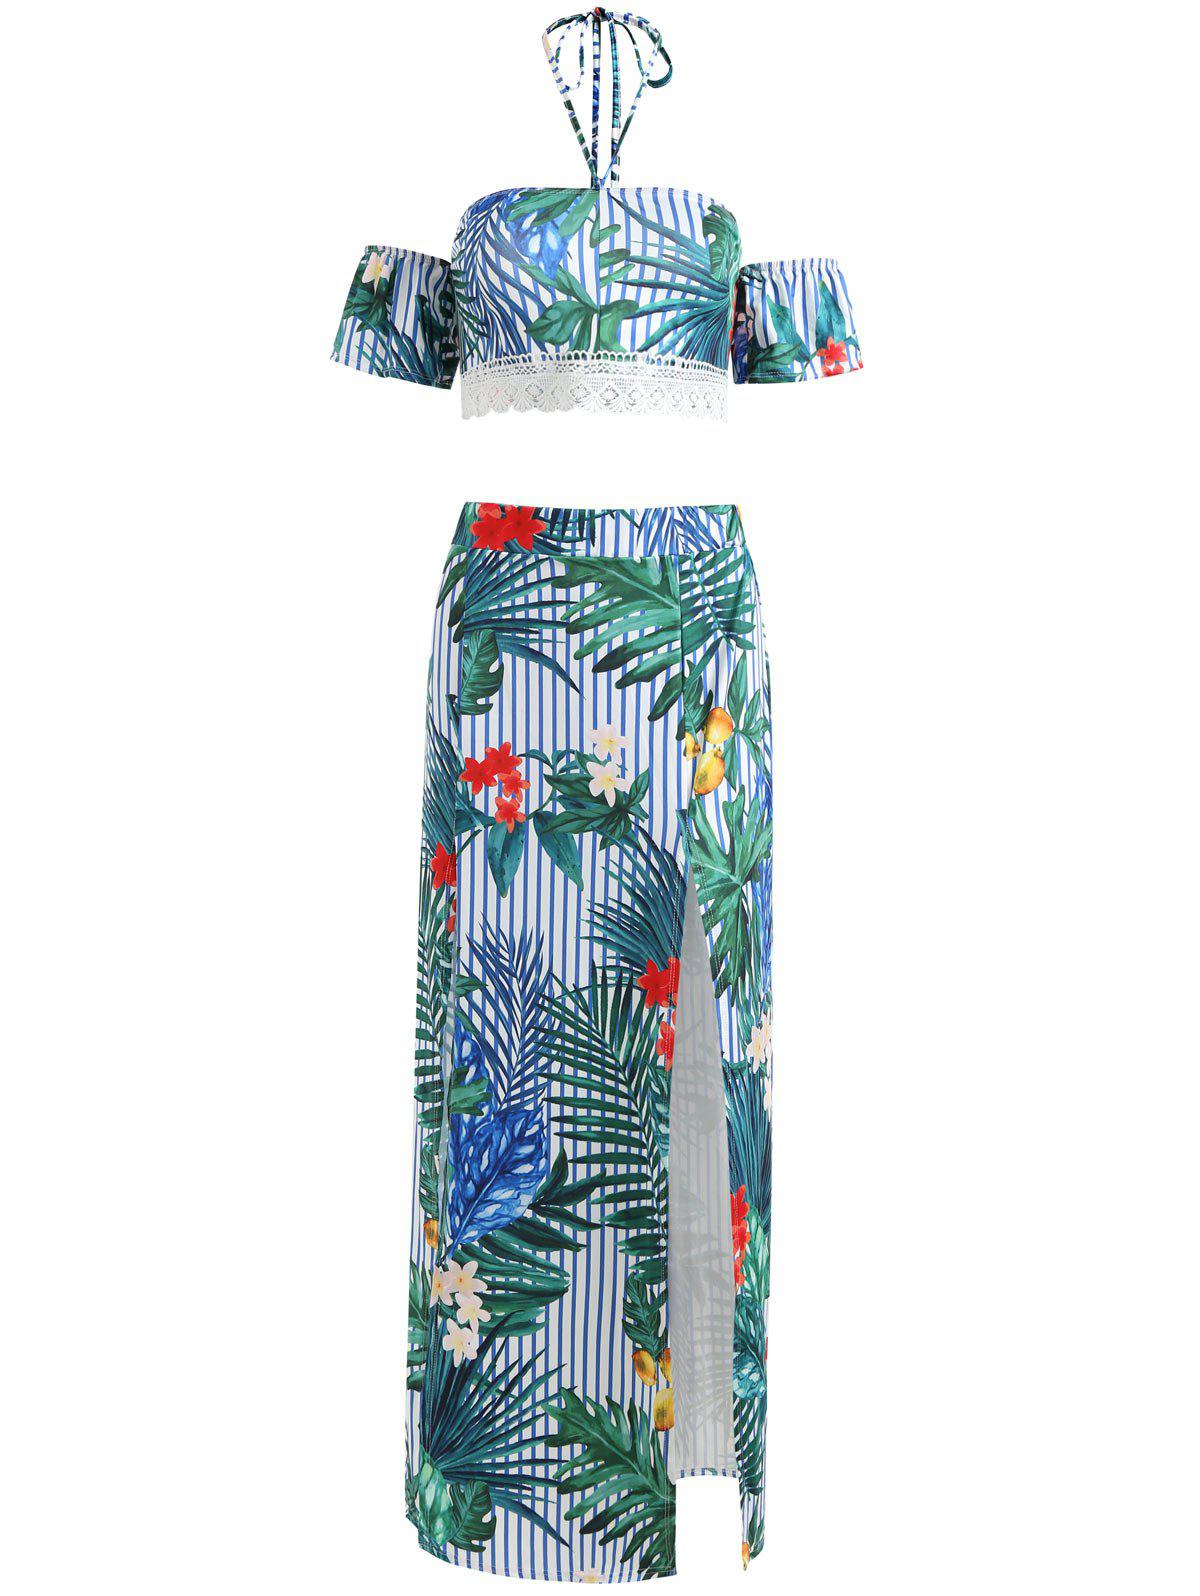 Floral Off Shoulder Crop Top with Slit Skirt - multicolor L